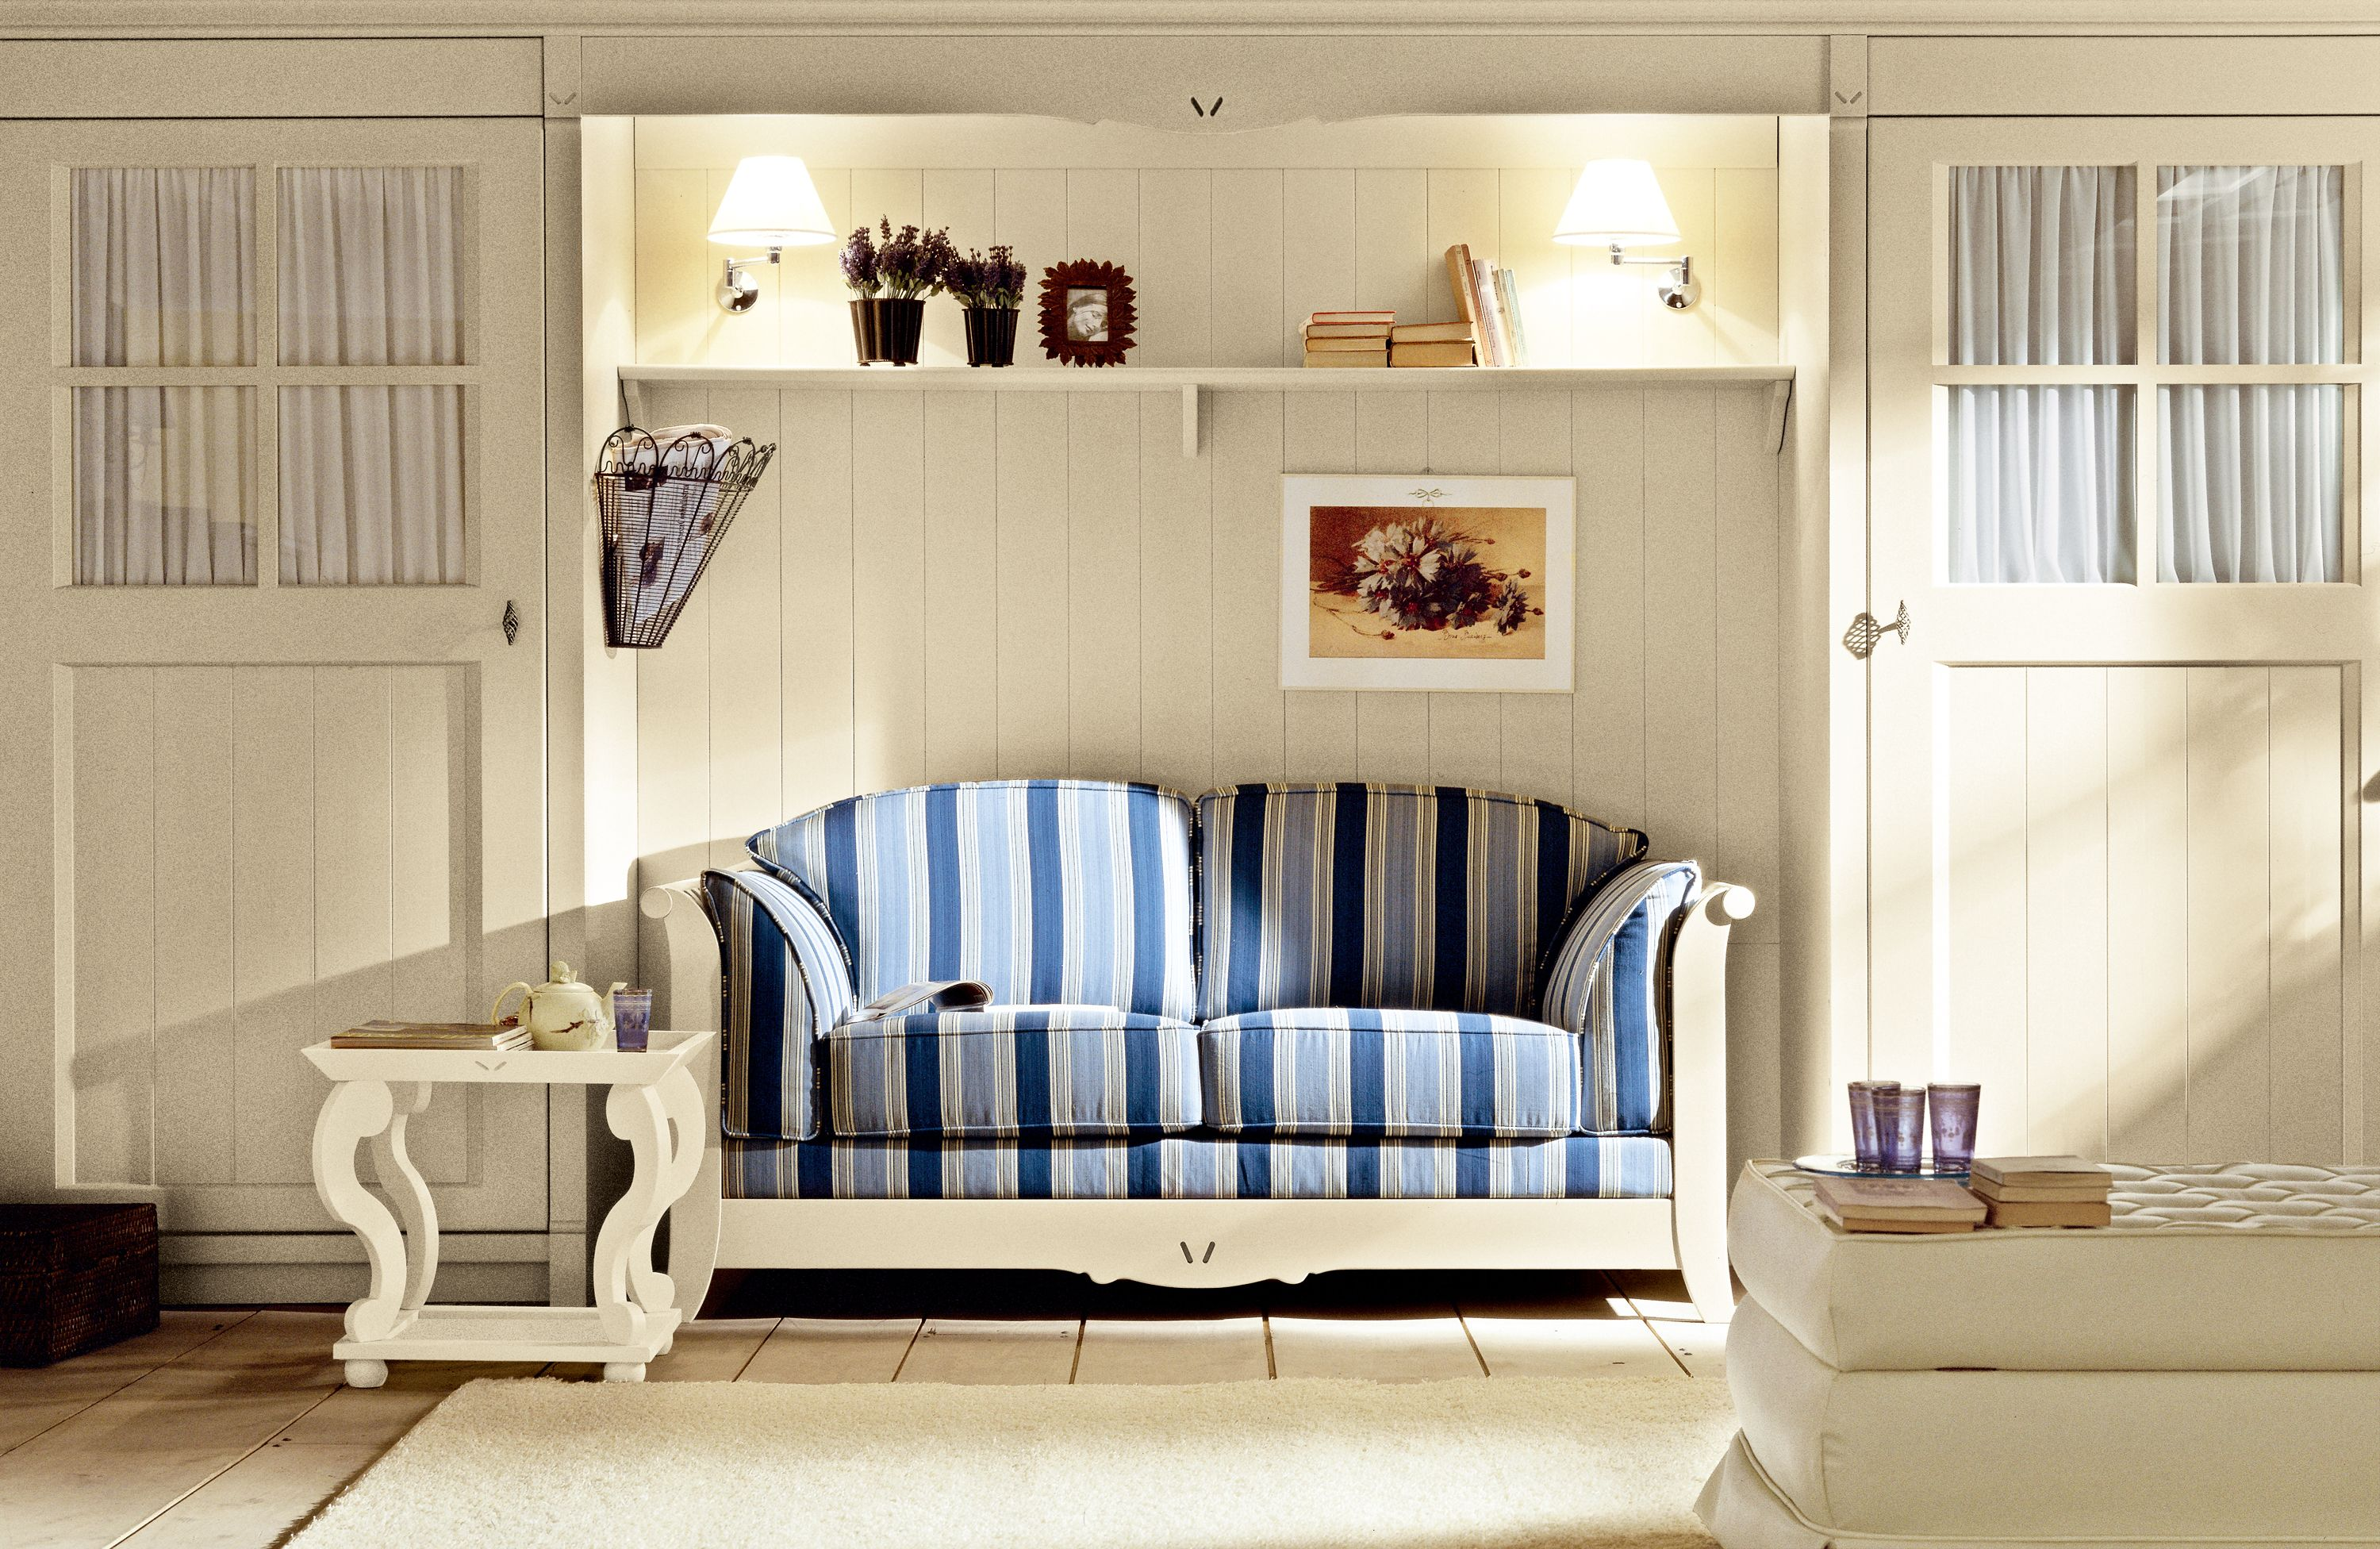 Divano Letto Shabby Chic : Countrychic bedrooms country chic shabbychic english